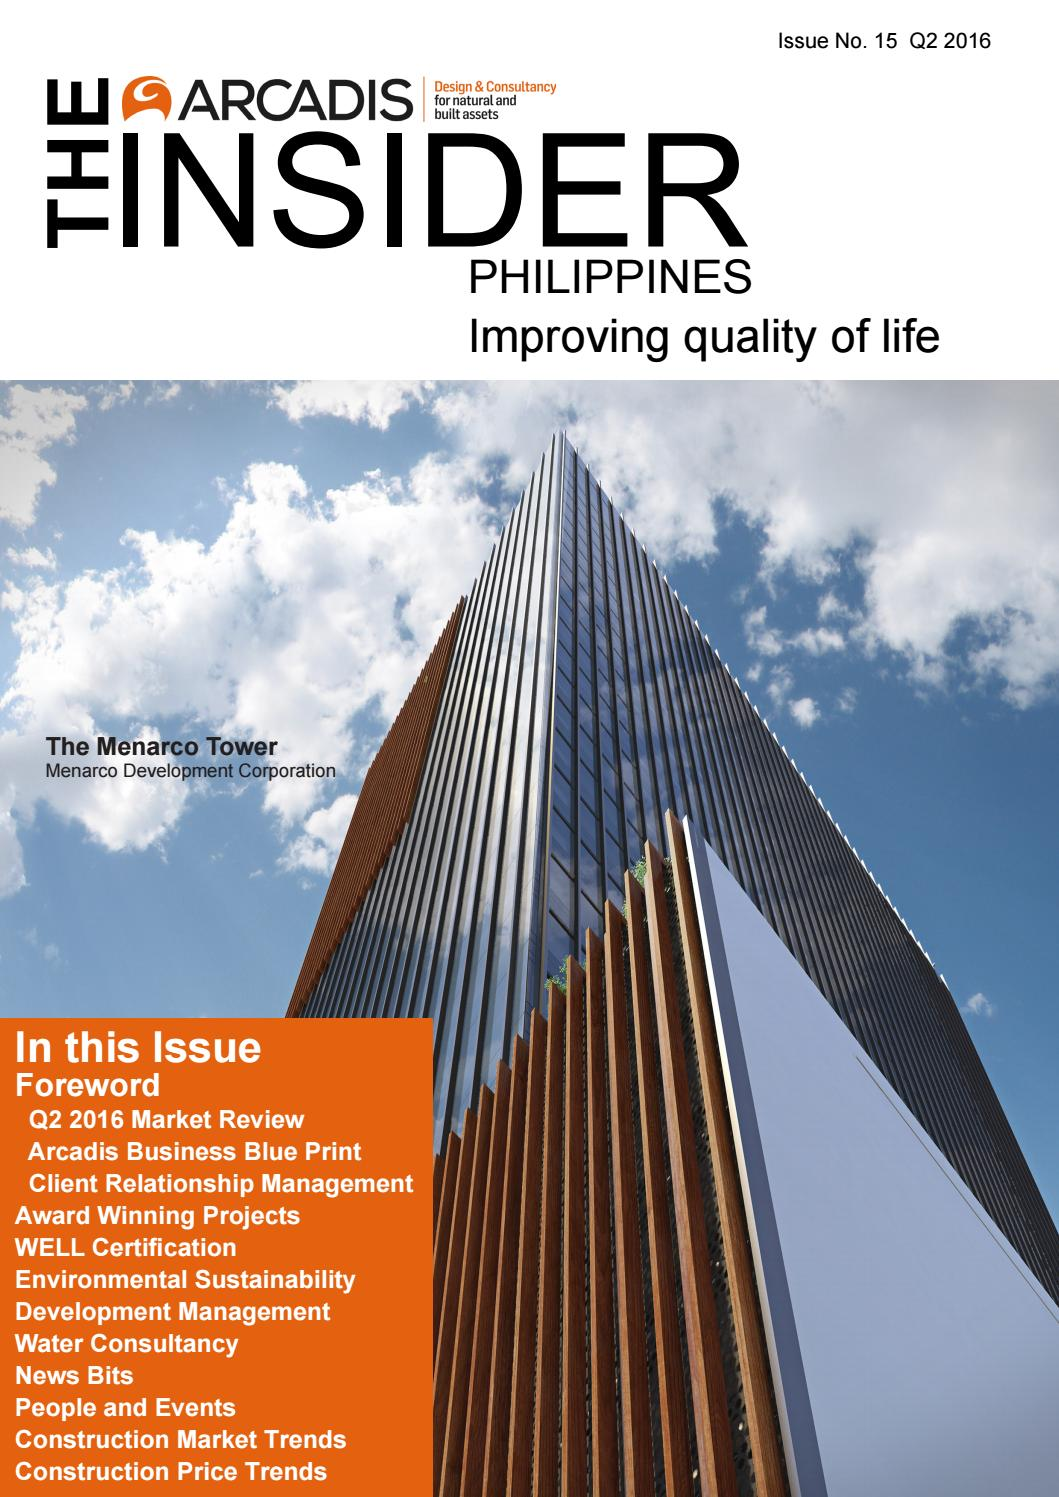 Arcadis insider june 2016 issue by arcadis issuu for Arcadis consulting